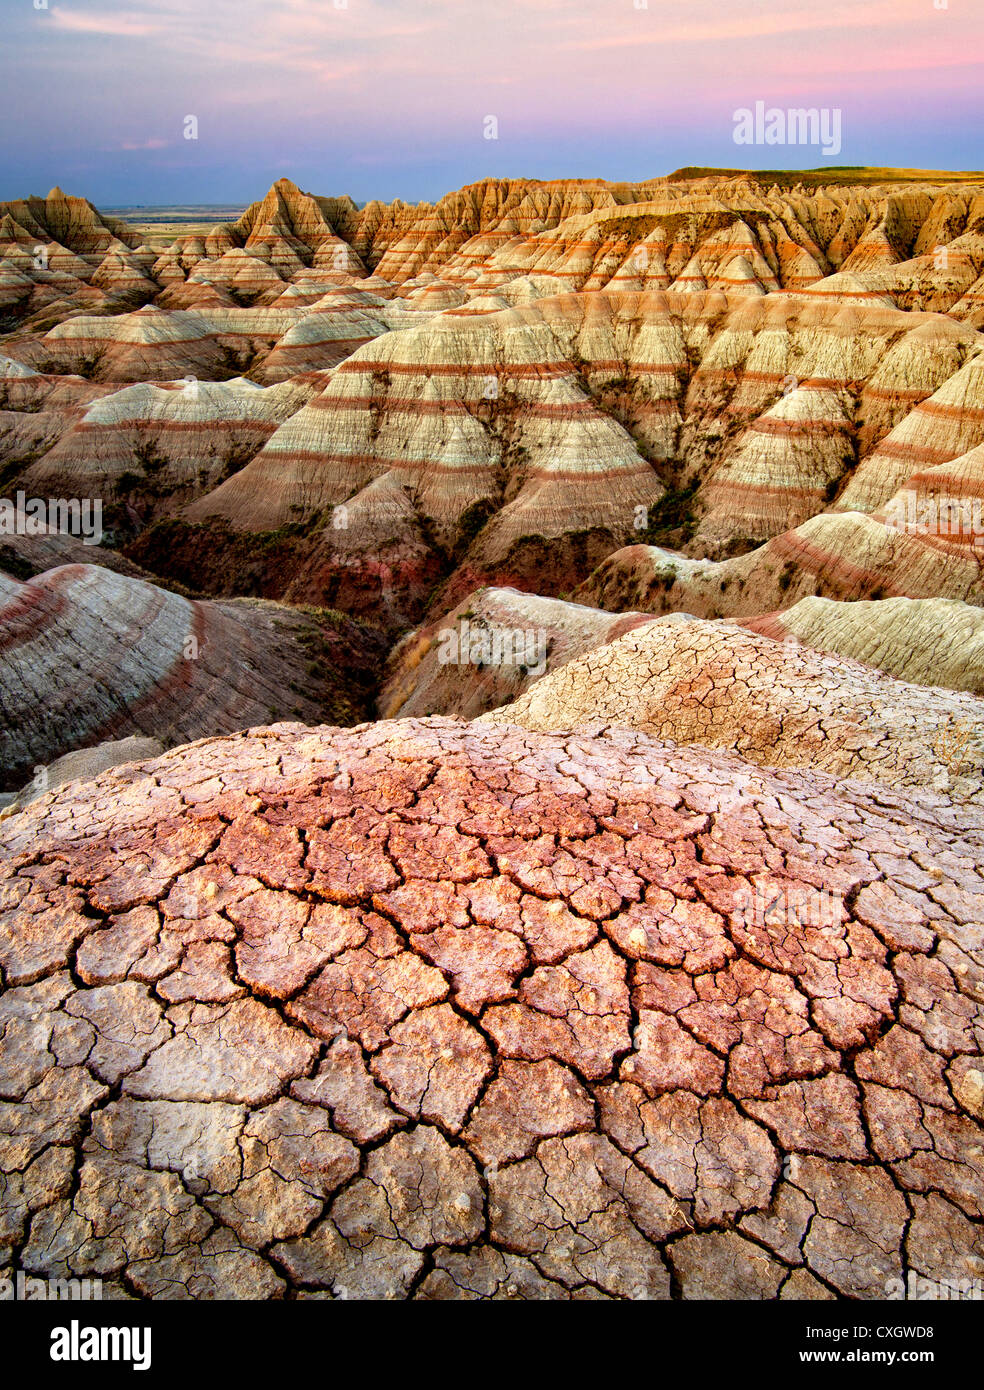 Eroded and cracked rock and mud formations. Badlands National Park. South Dakota formations. - Stock Image